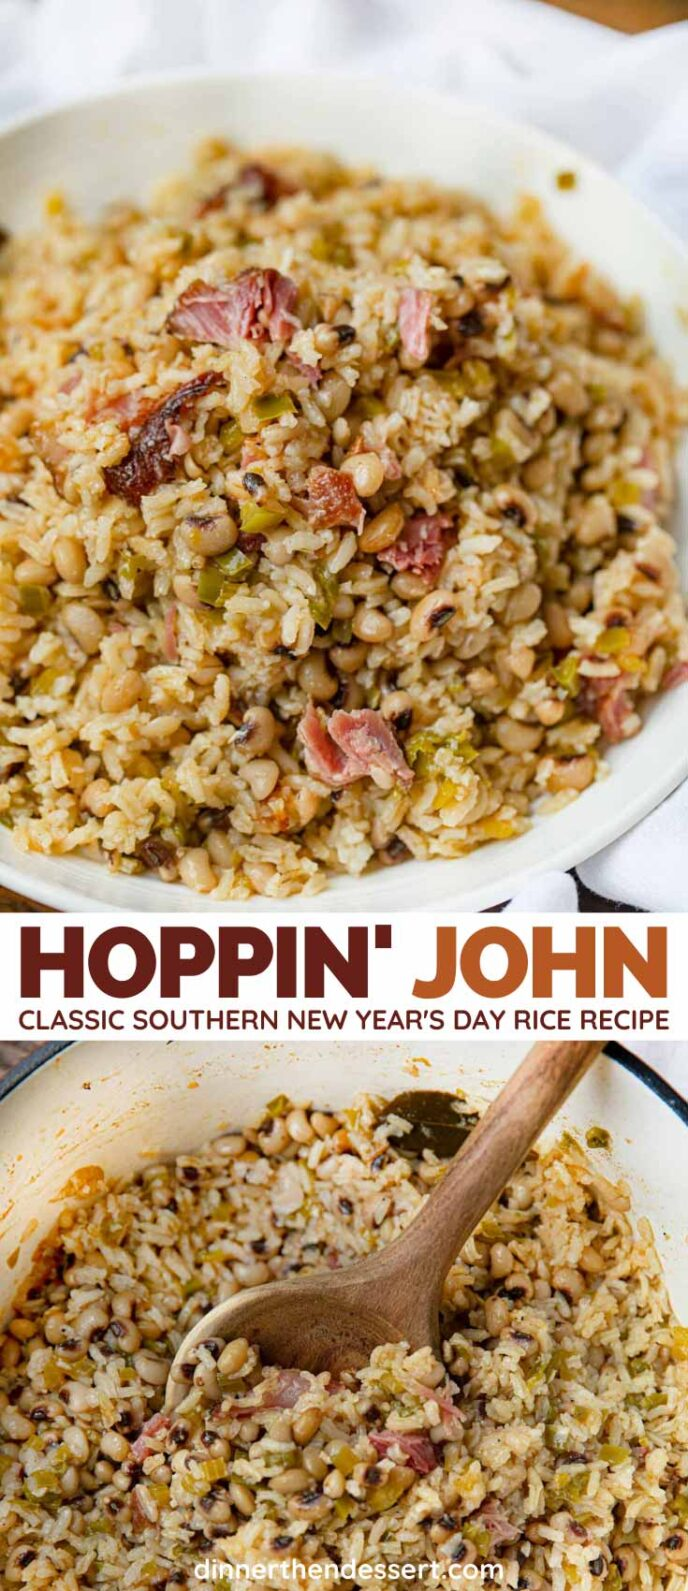 Hoppin' John collage